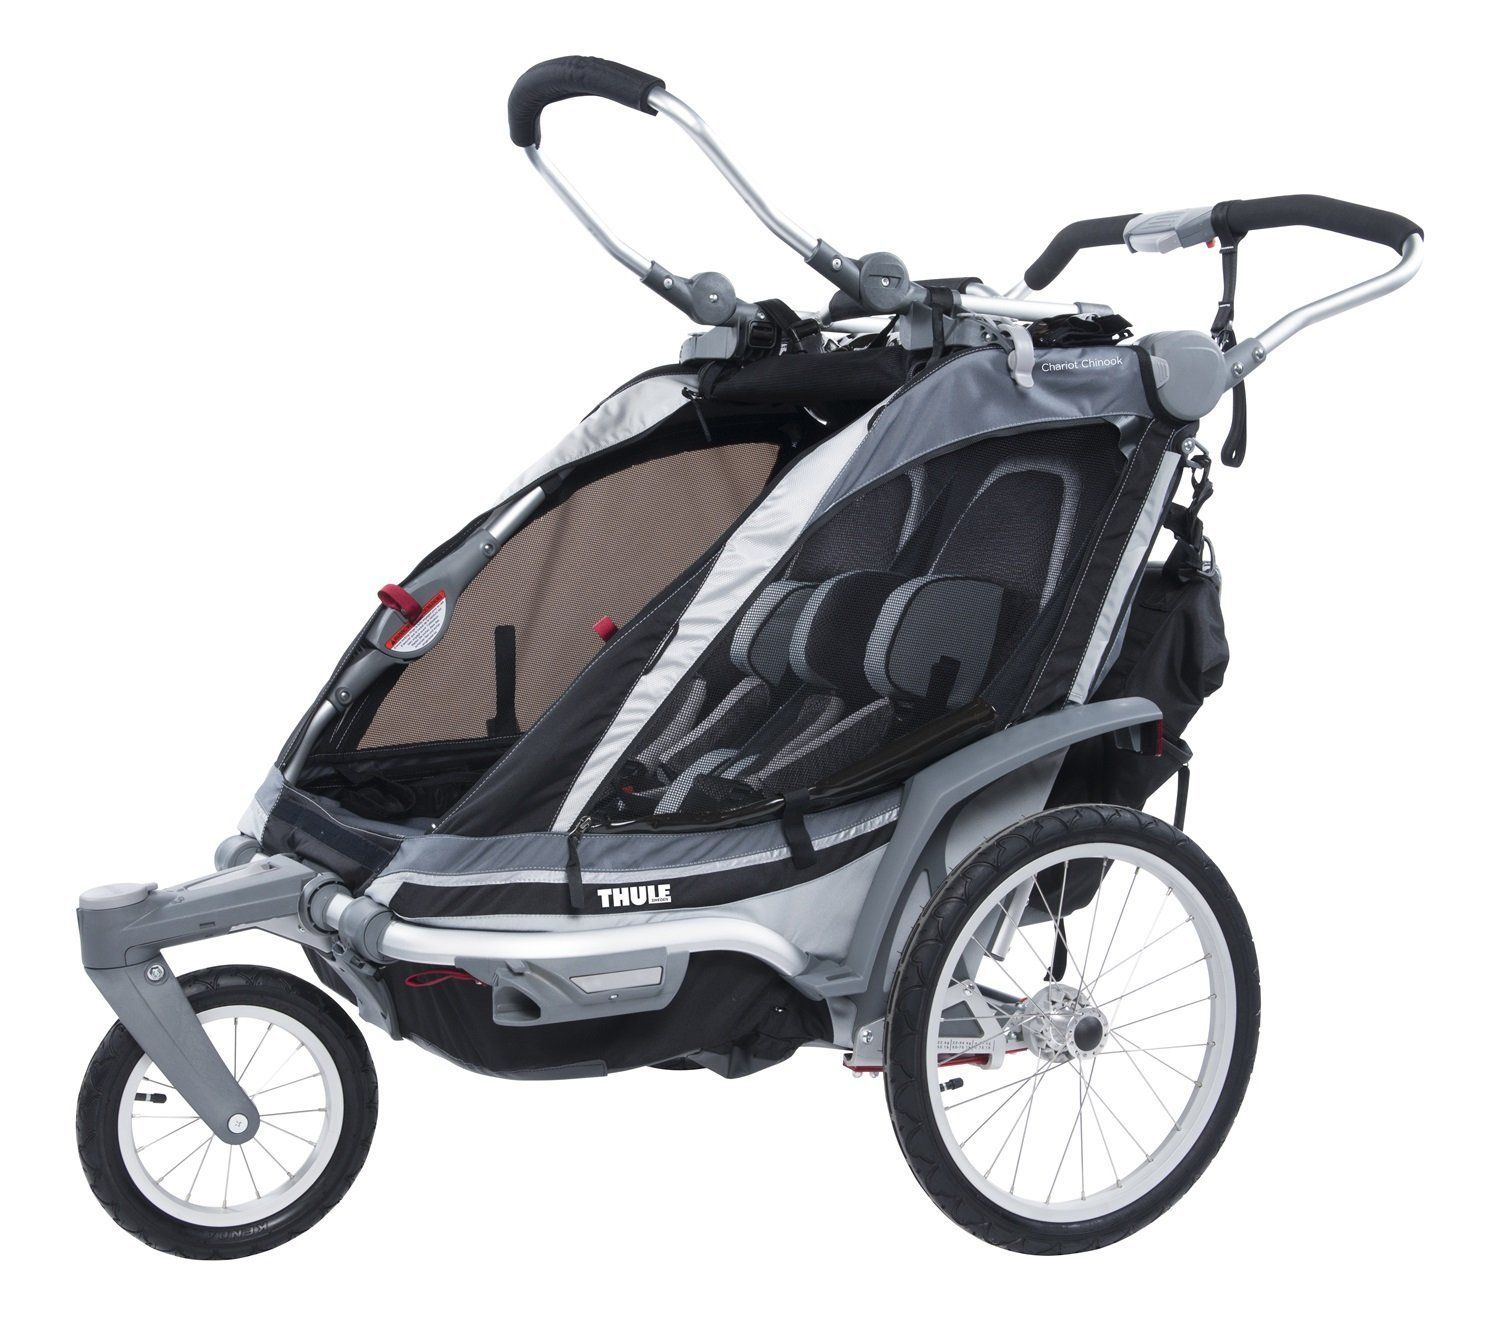 Twin Stroller In Dubai Stroller Suggestions To Fit Multiple Kids Double And Triple